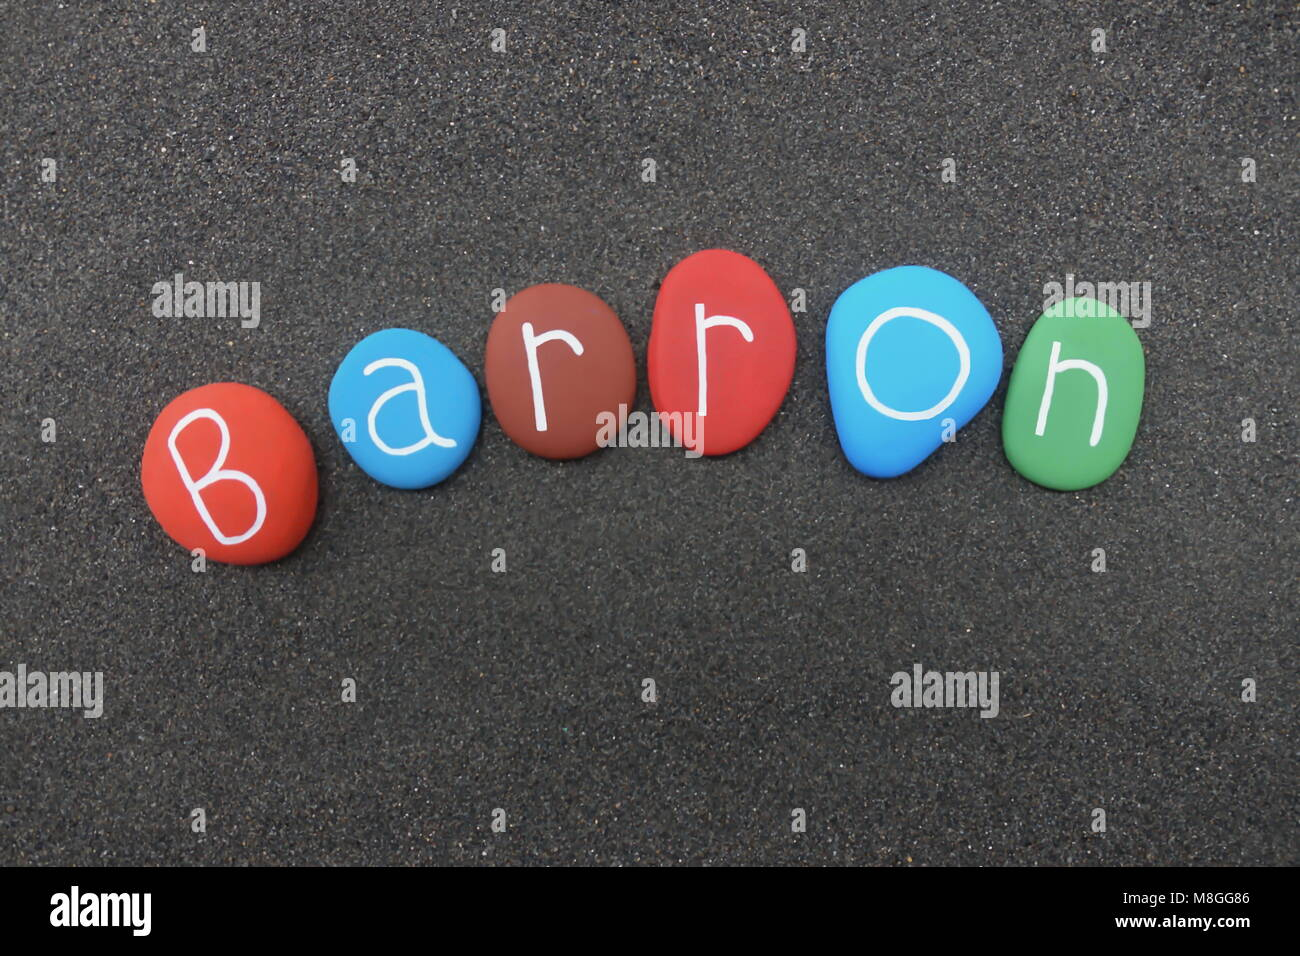 Barron, masculine given name with multicolored stones over black volcanic sand - Stock Image